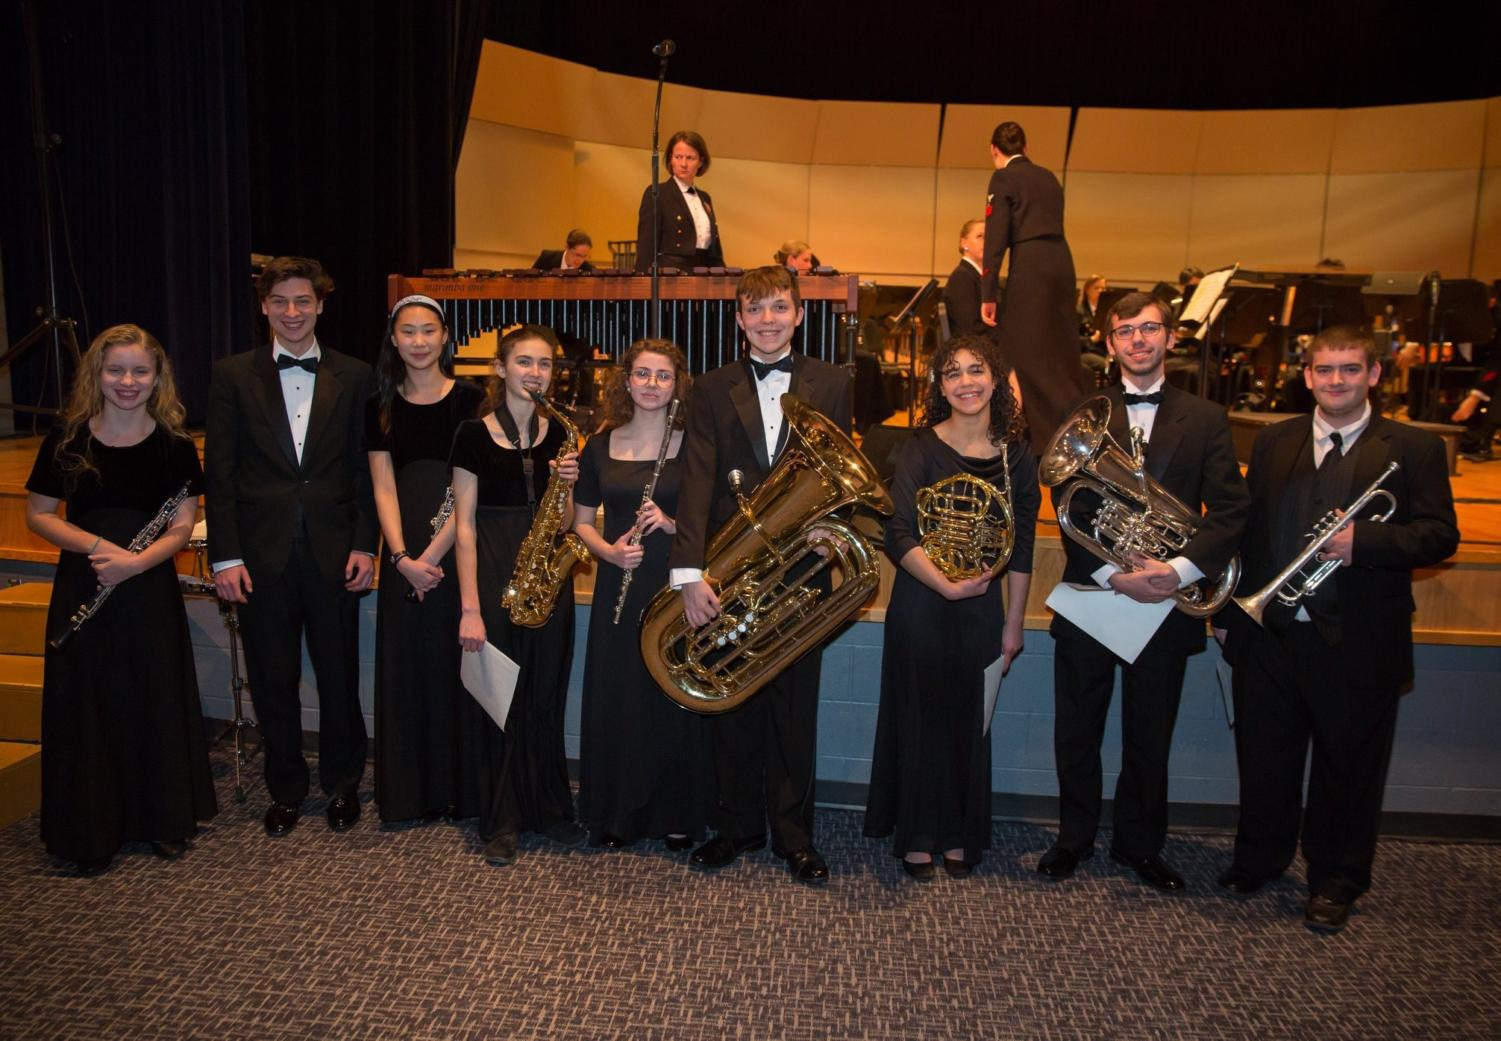 Nine+students+smile+in+excitement+after+performing+with+the+Navy+Band.+